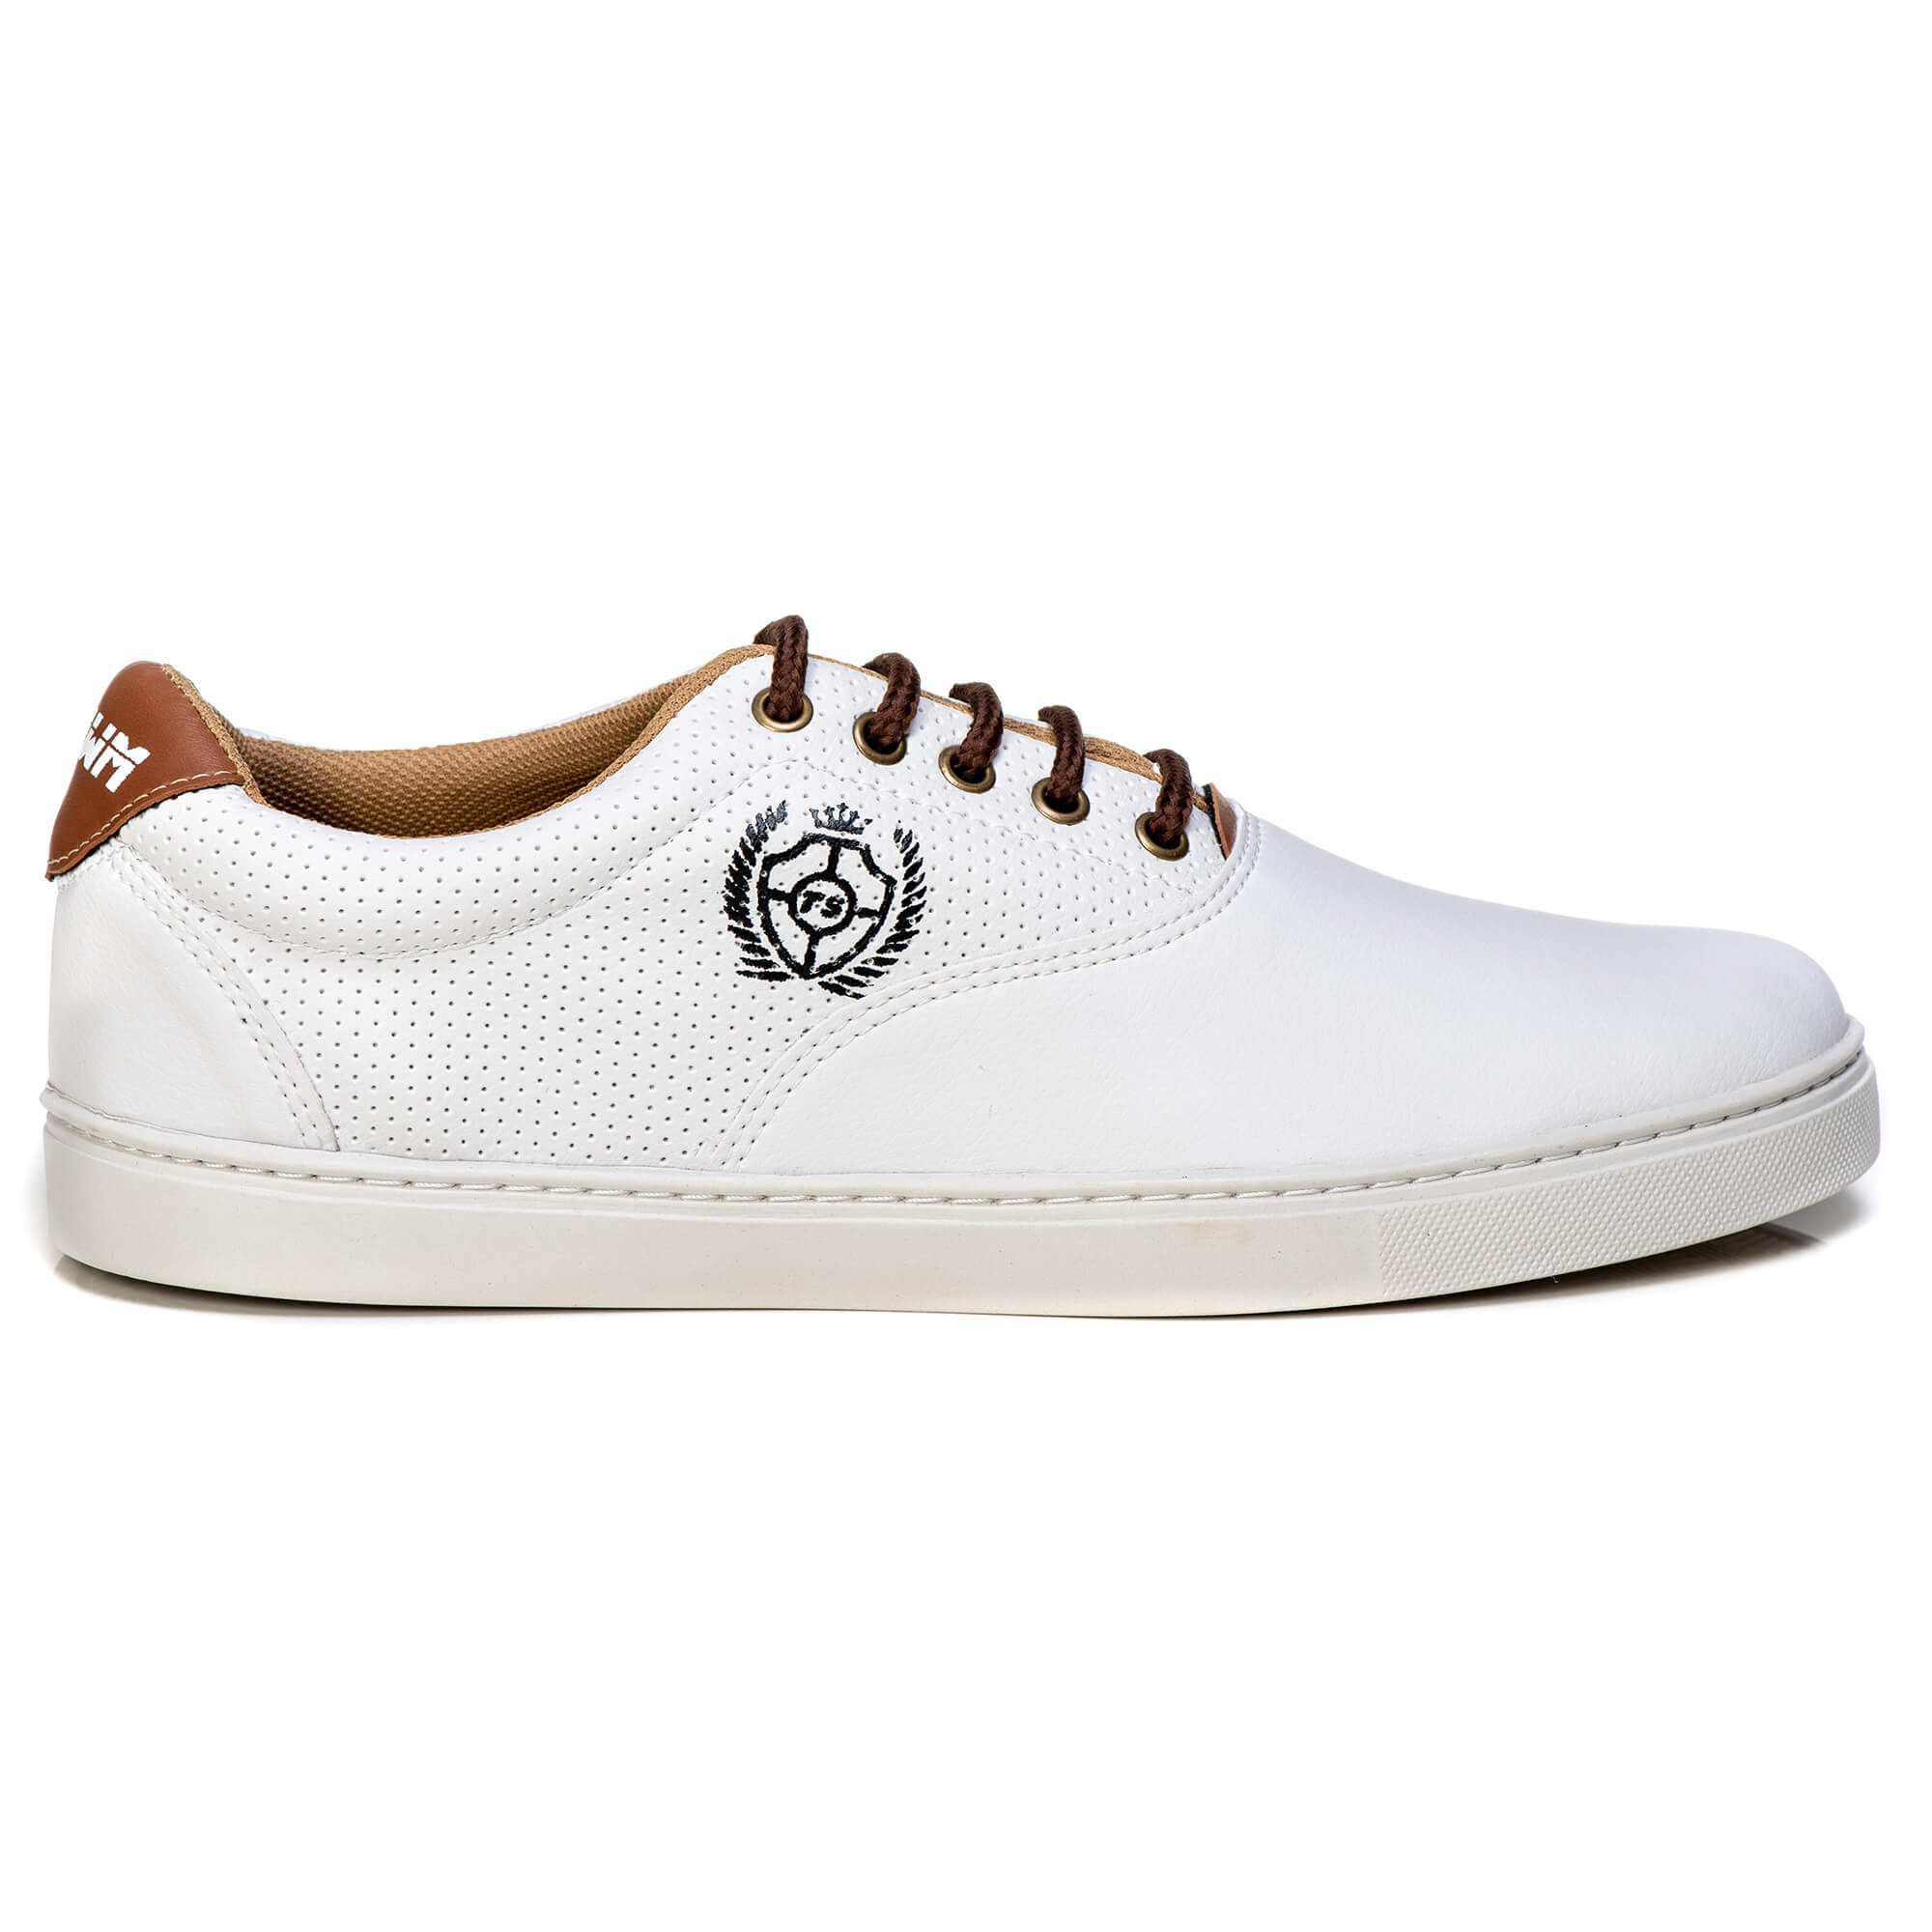 Tênis Polo Casual Masculino Tchwm Shoes Sintético Cores + Carteira